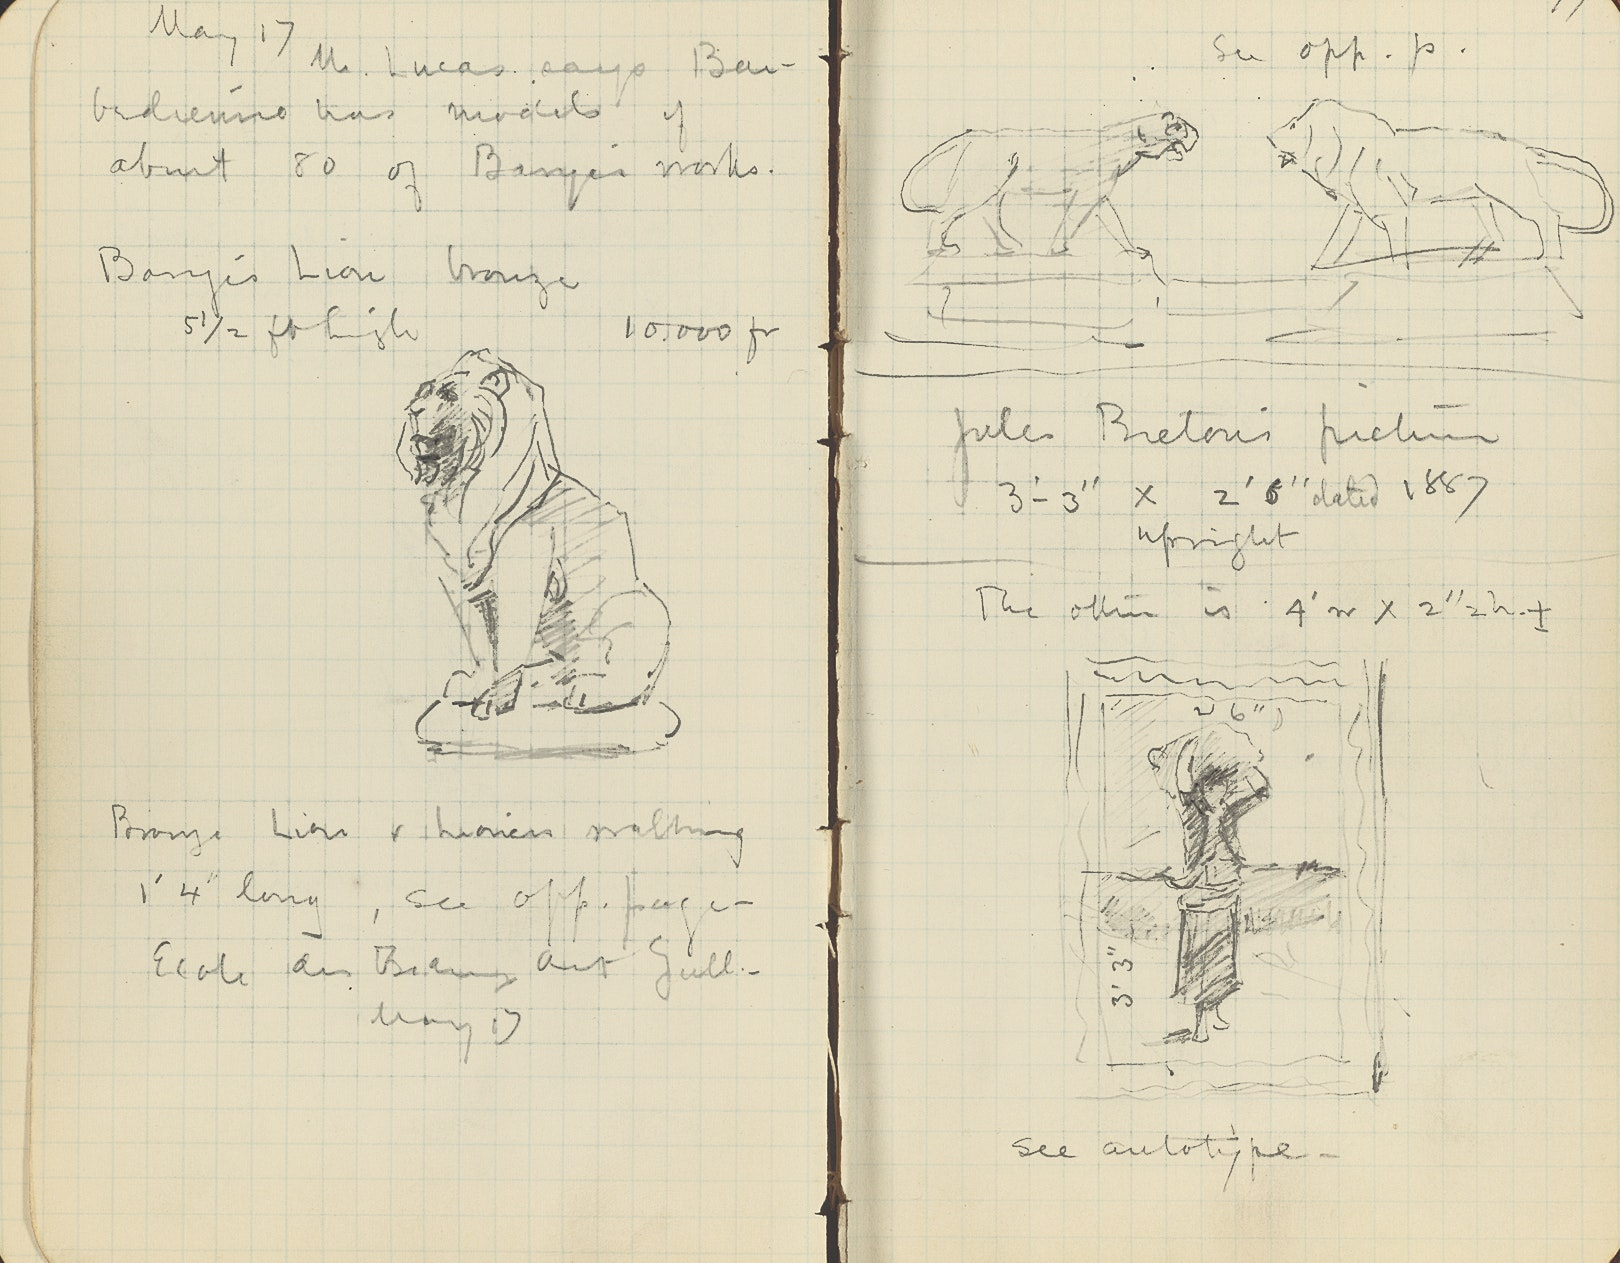 Pages from William M. R. French's Sketchbook